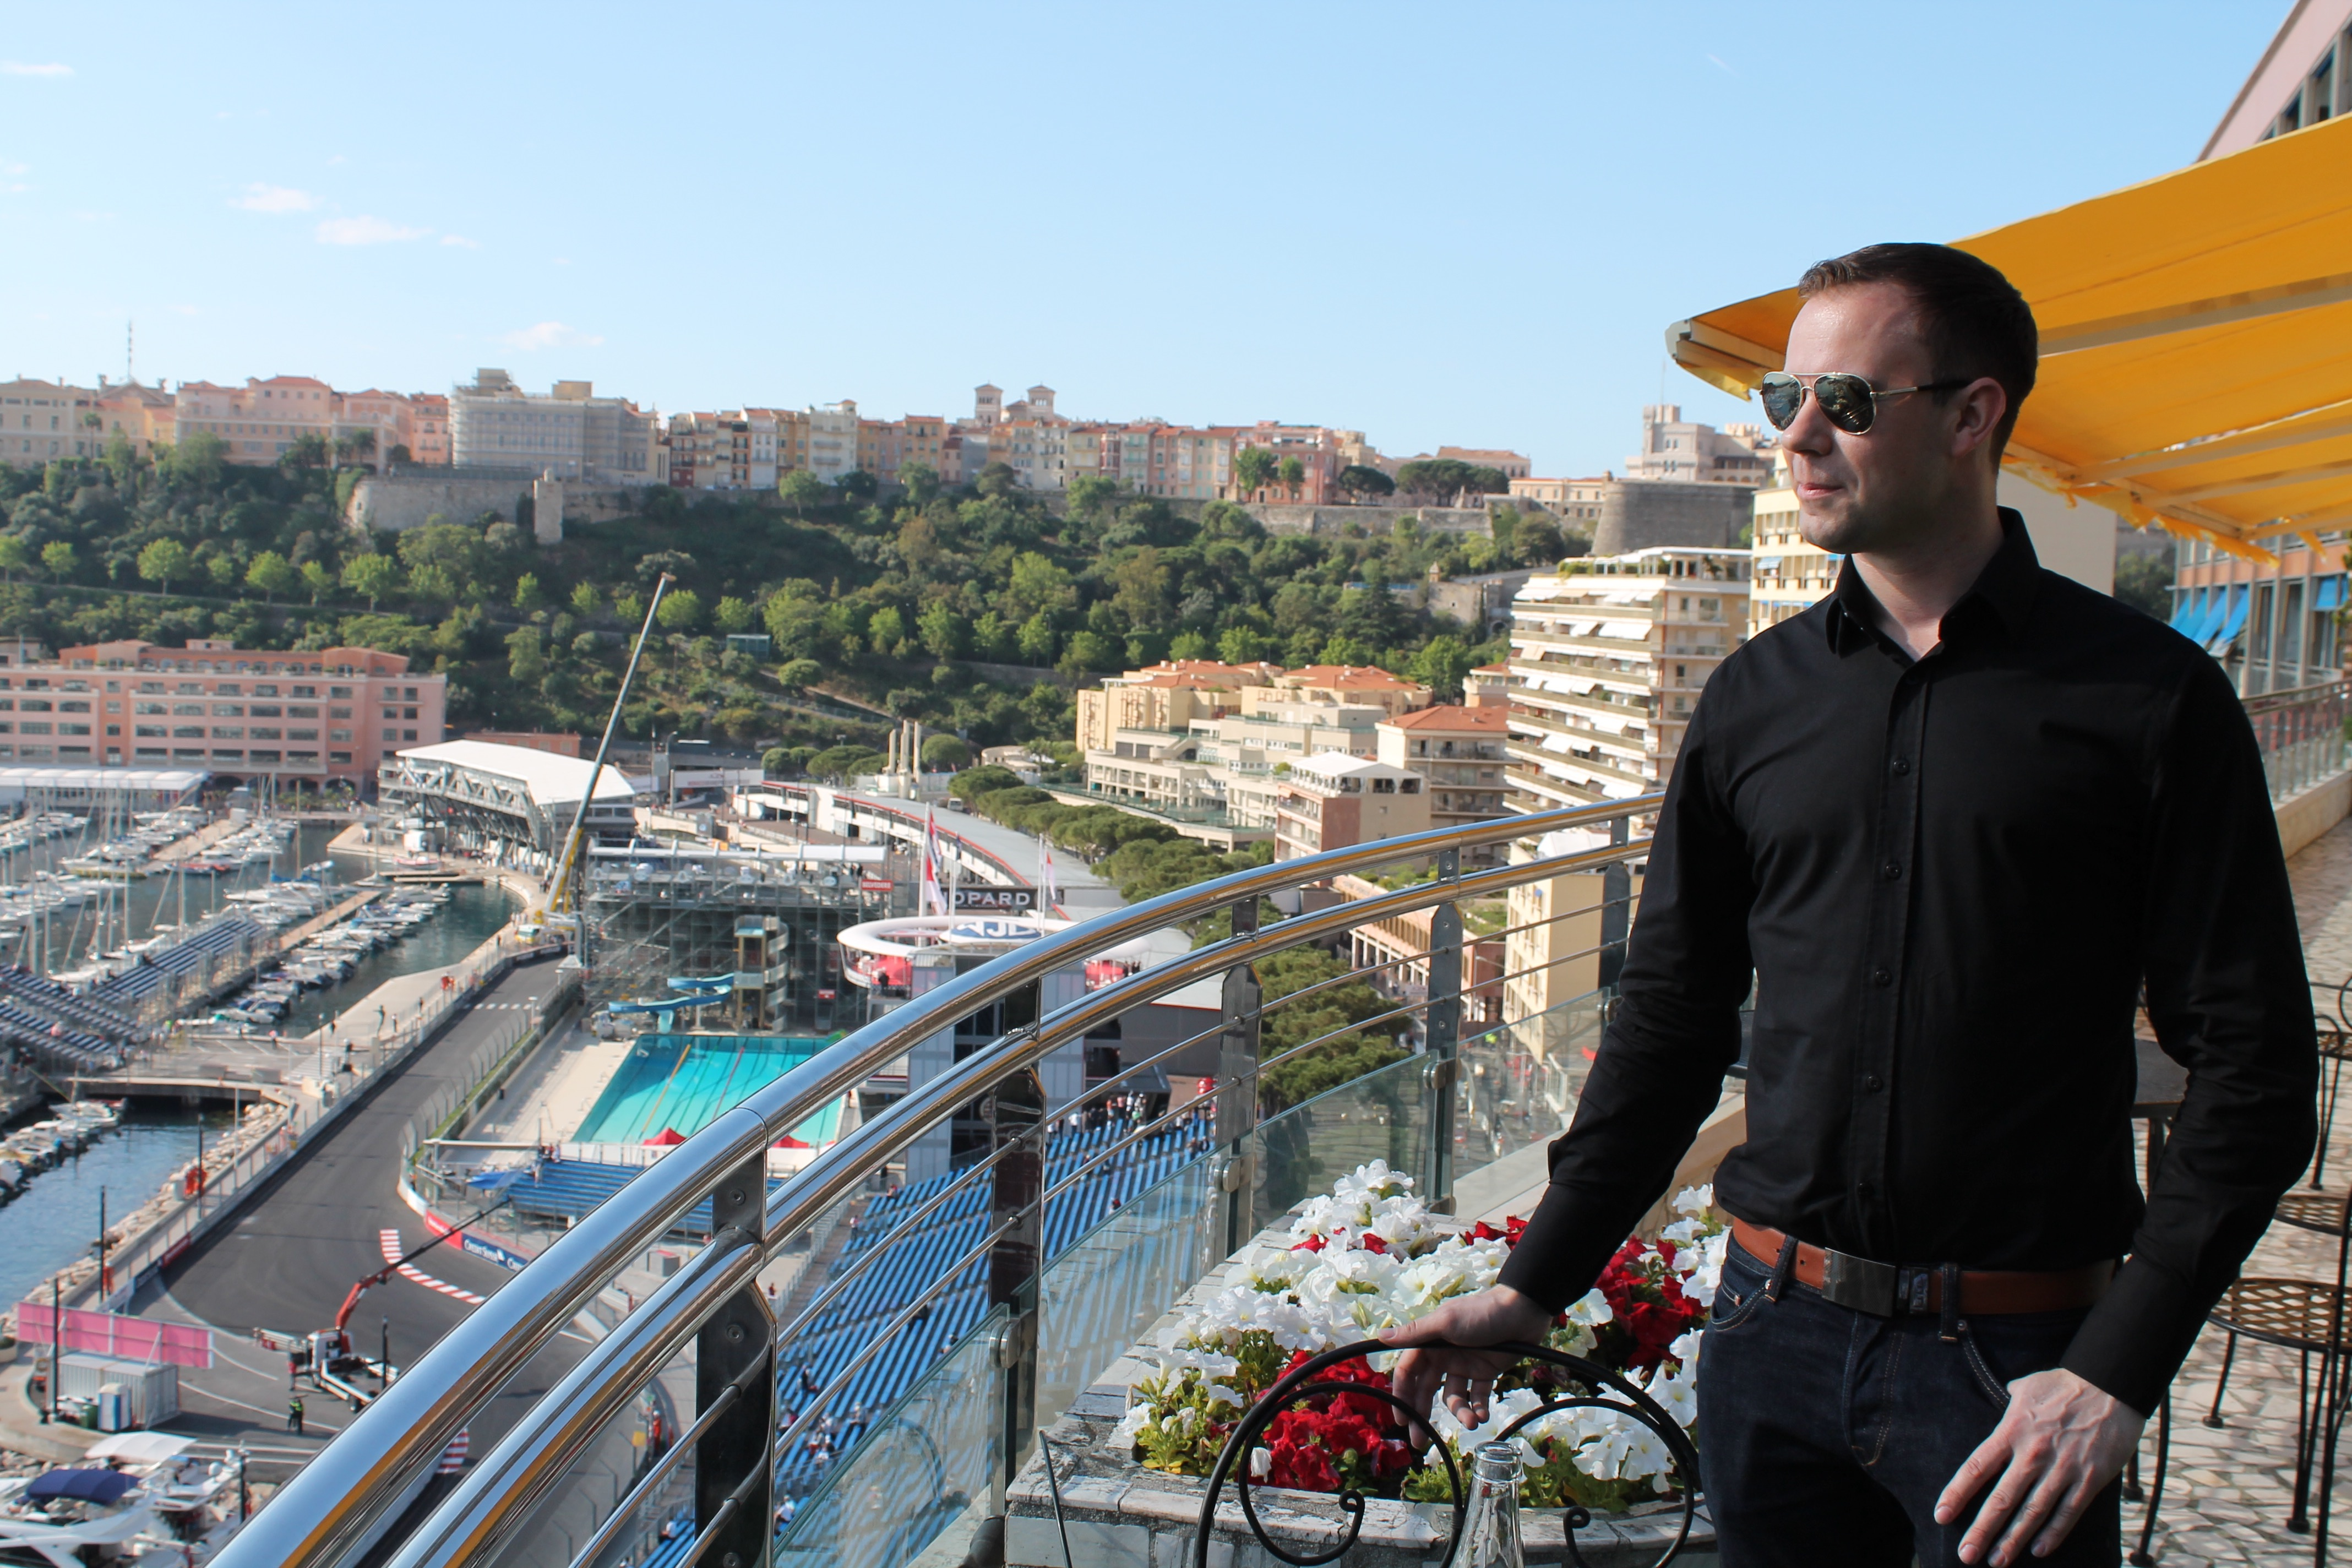 Monaco Grand Prix Hospitality Like No Other…. I Visit The €65 Million Euro Ermanno Palace Apartment With ExclusiveGP